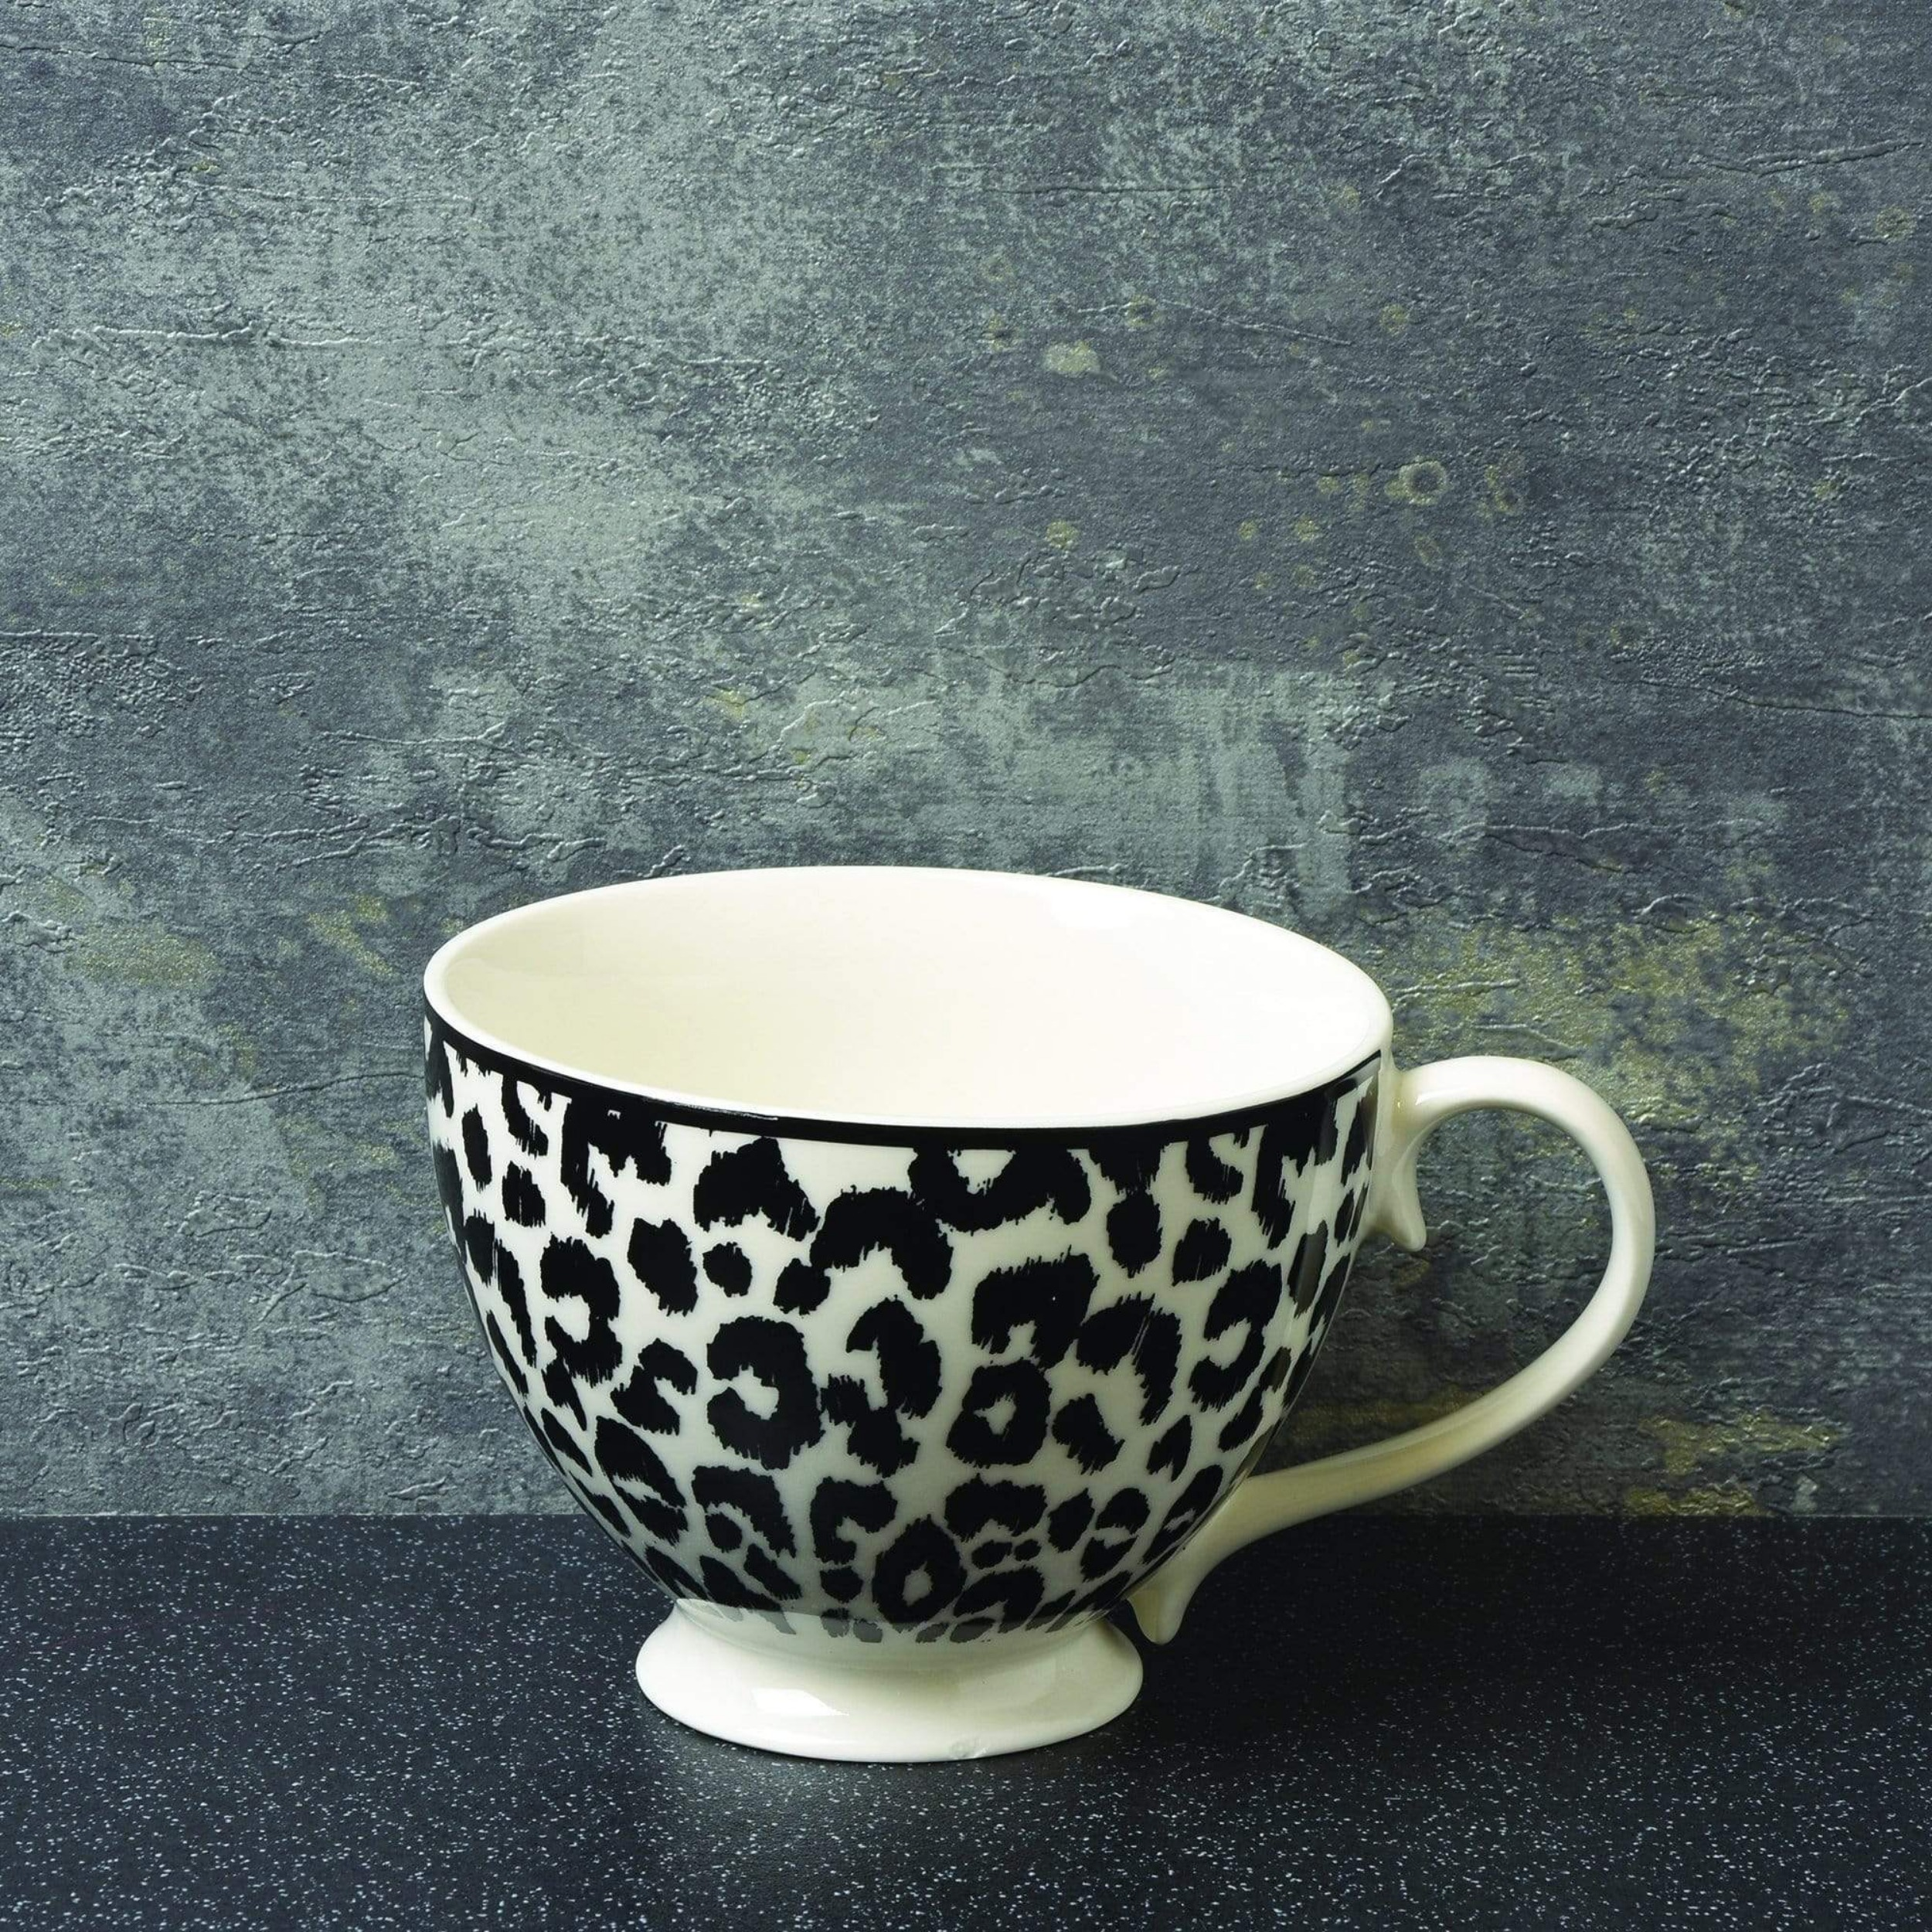 Luxe leopard print footed mug